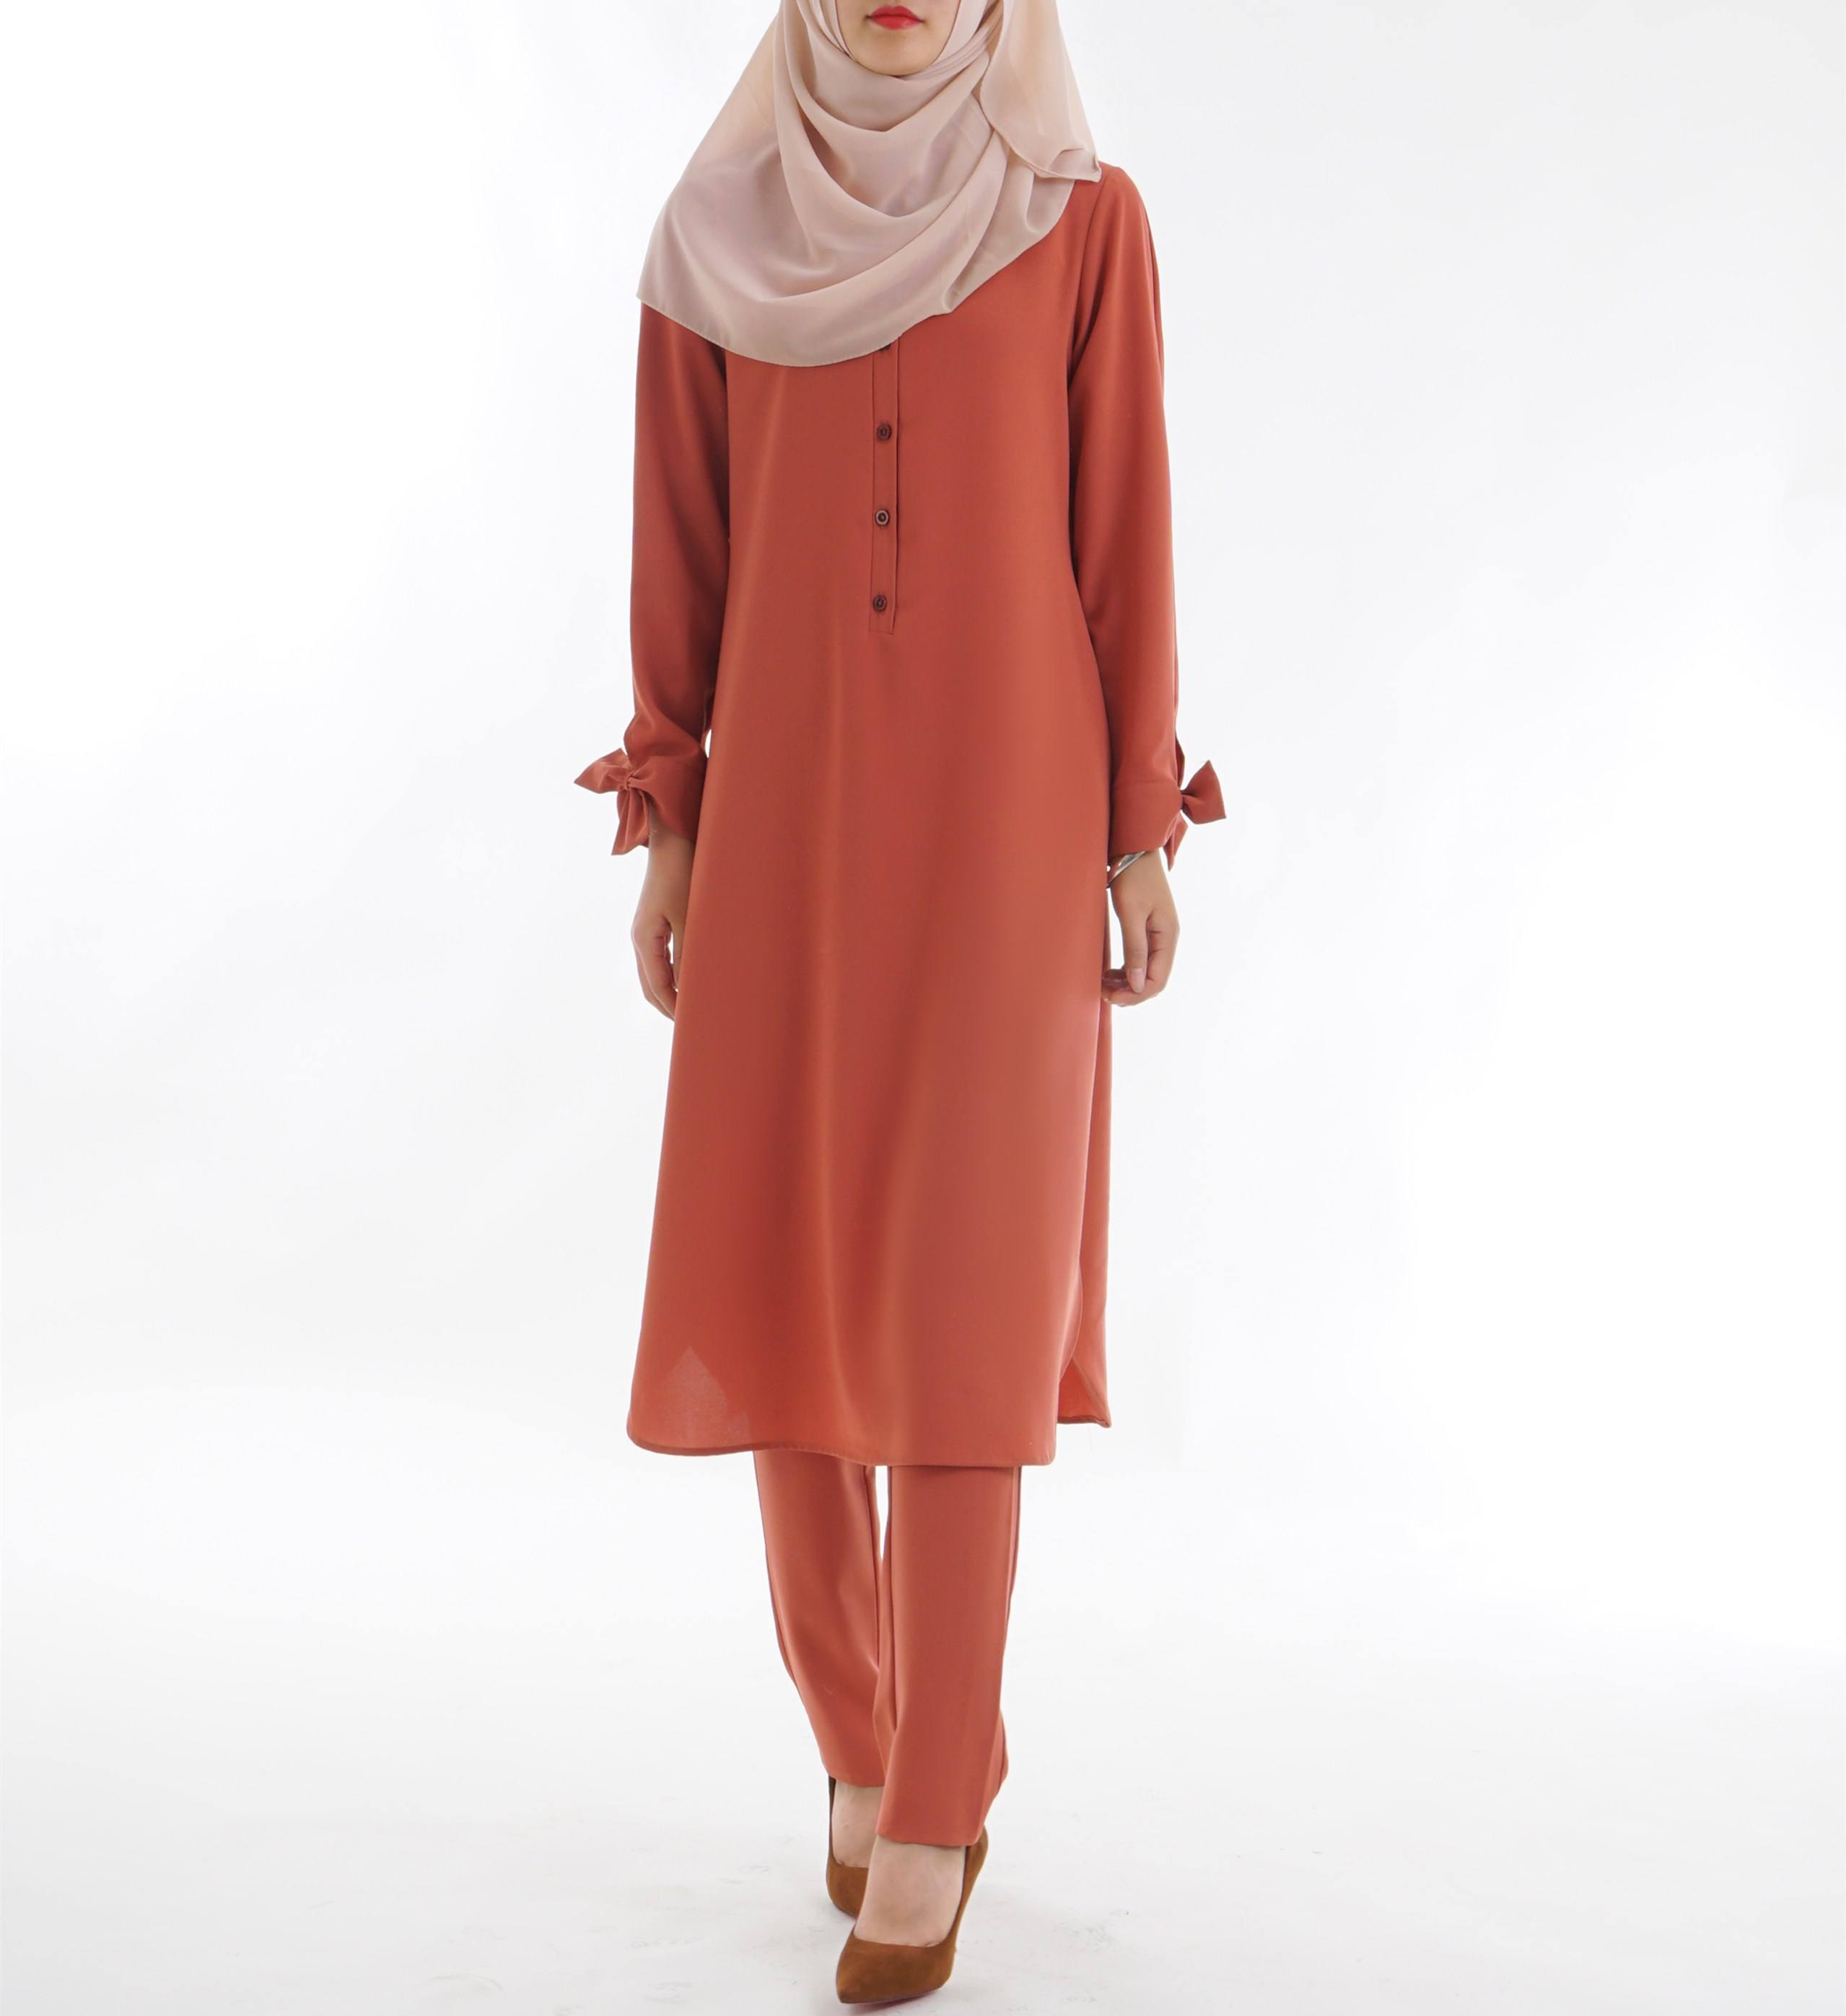 modern style women blouse suit baju kurung muslimah top for casual clothing